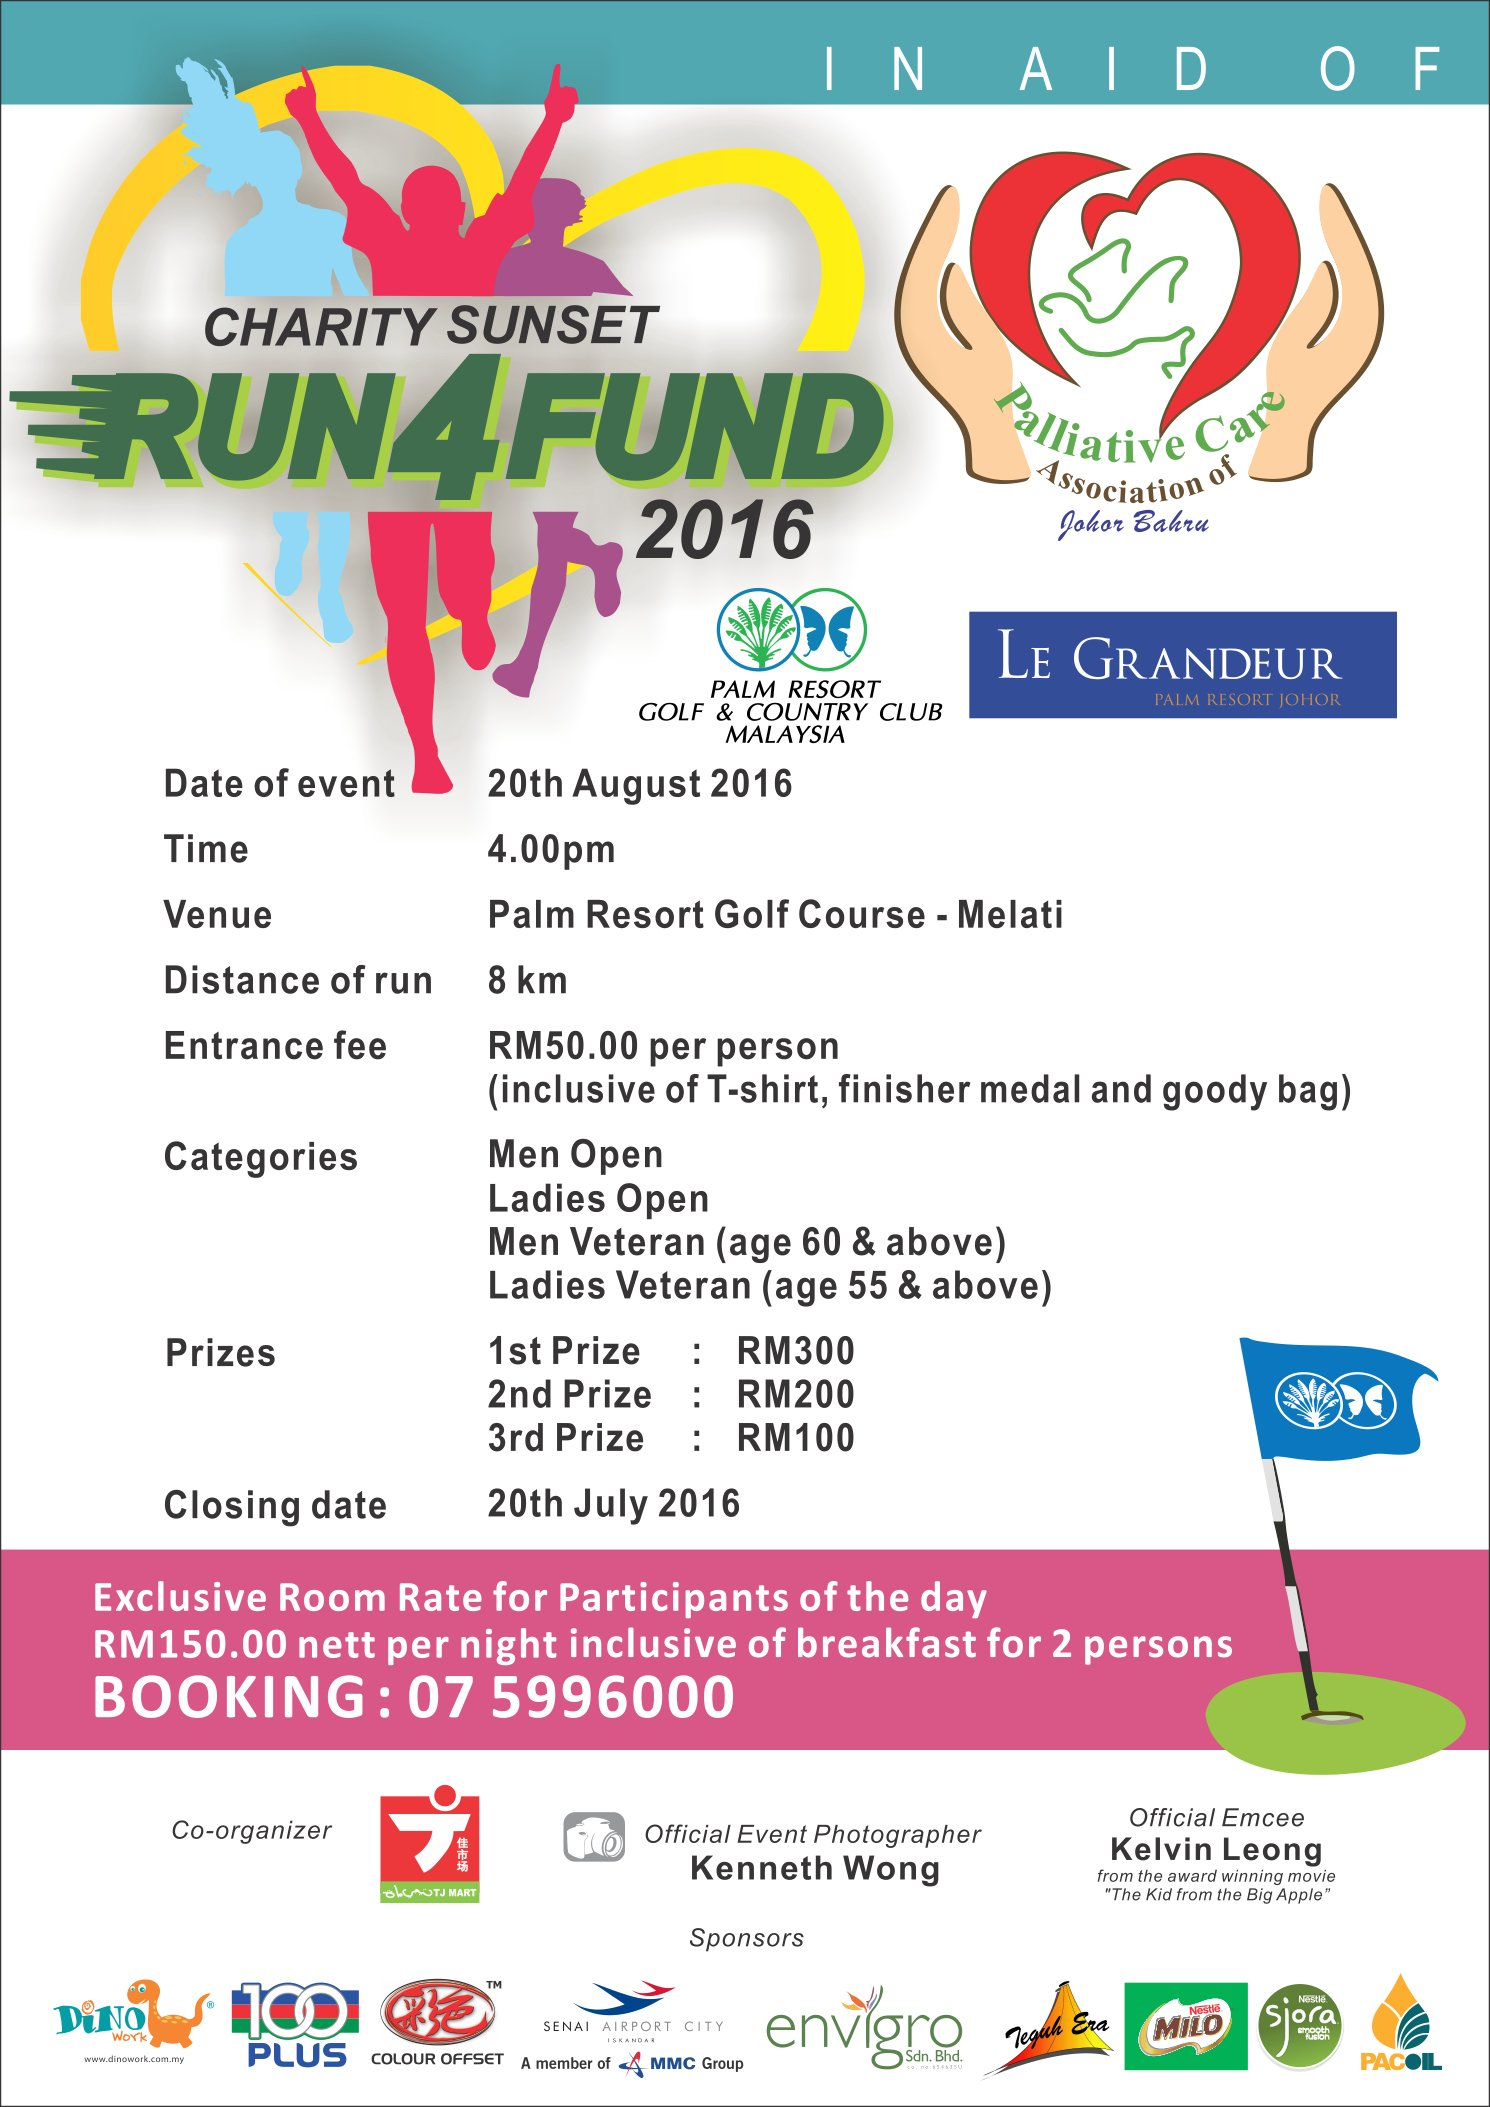 Run4Fund 2016 by Palm Resort